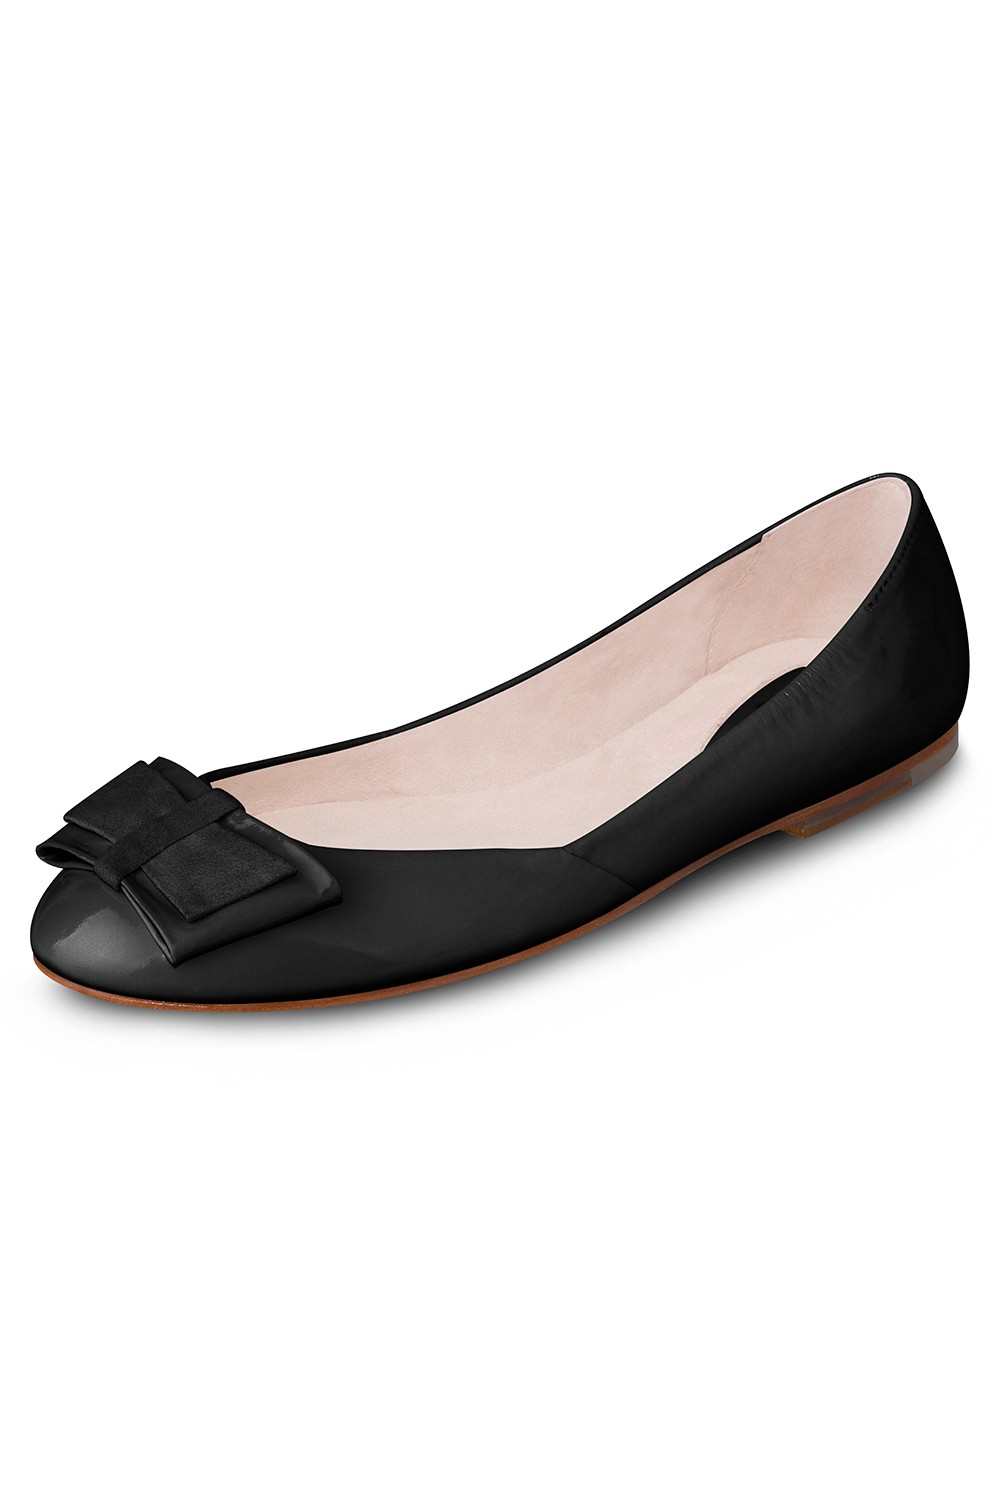 Morea Ballet Flat Womens Fashion Shoes